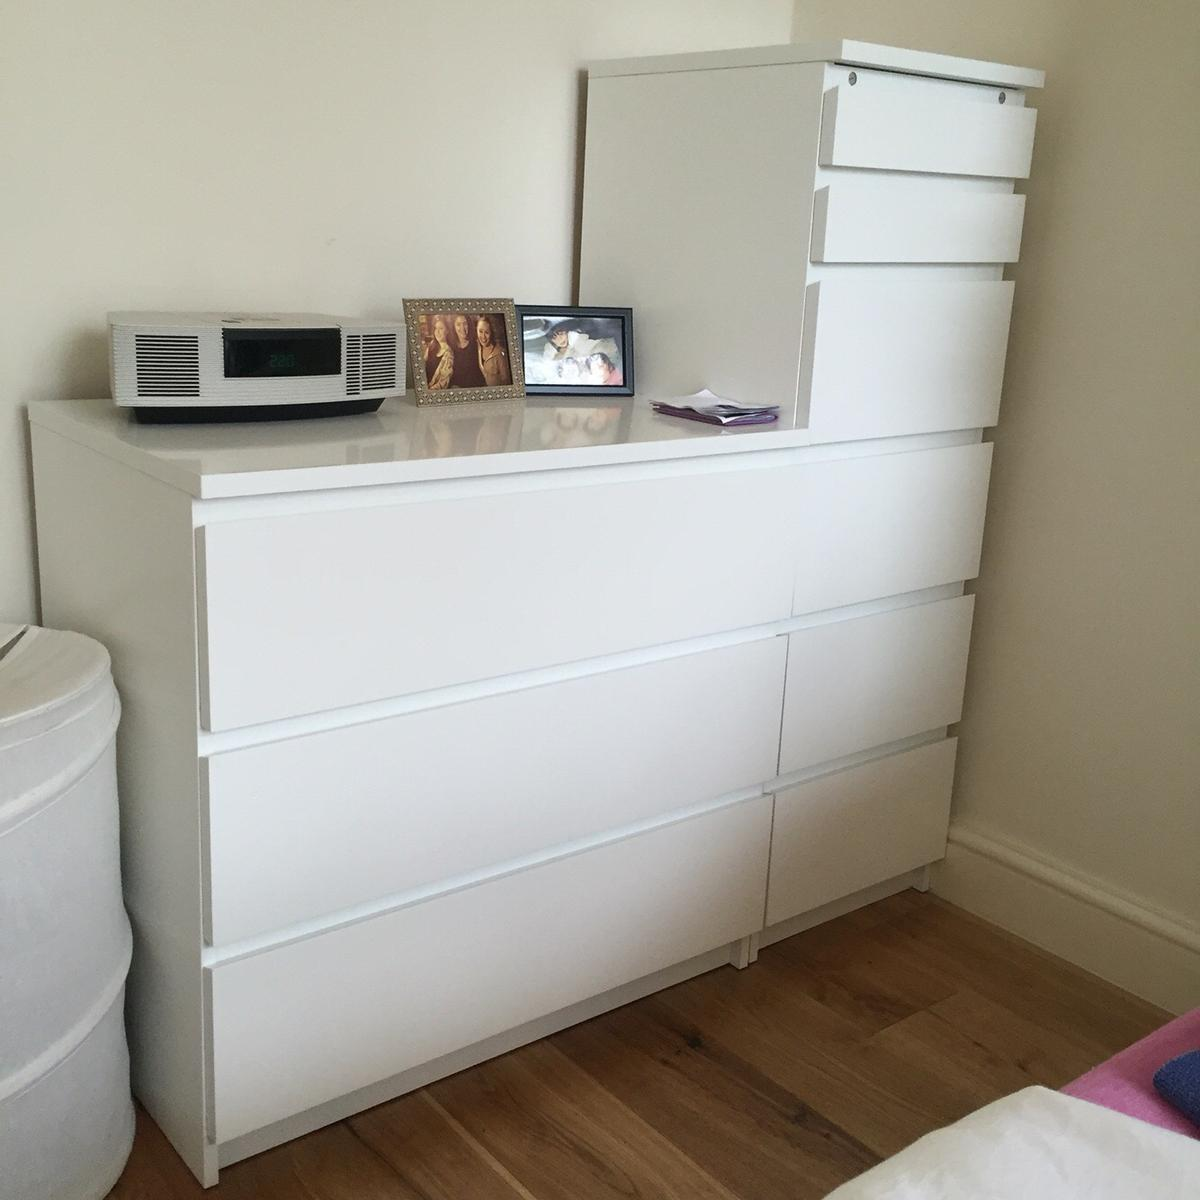 163b9ccf0f3c IKEA MALM Chest 6 Drawers w/Mirror Lid White in W12 London for ...